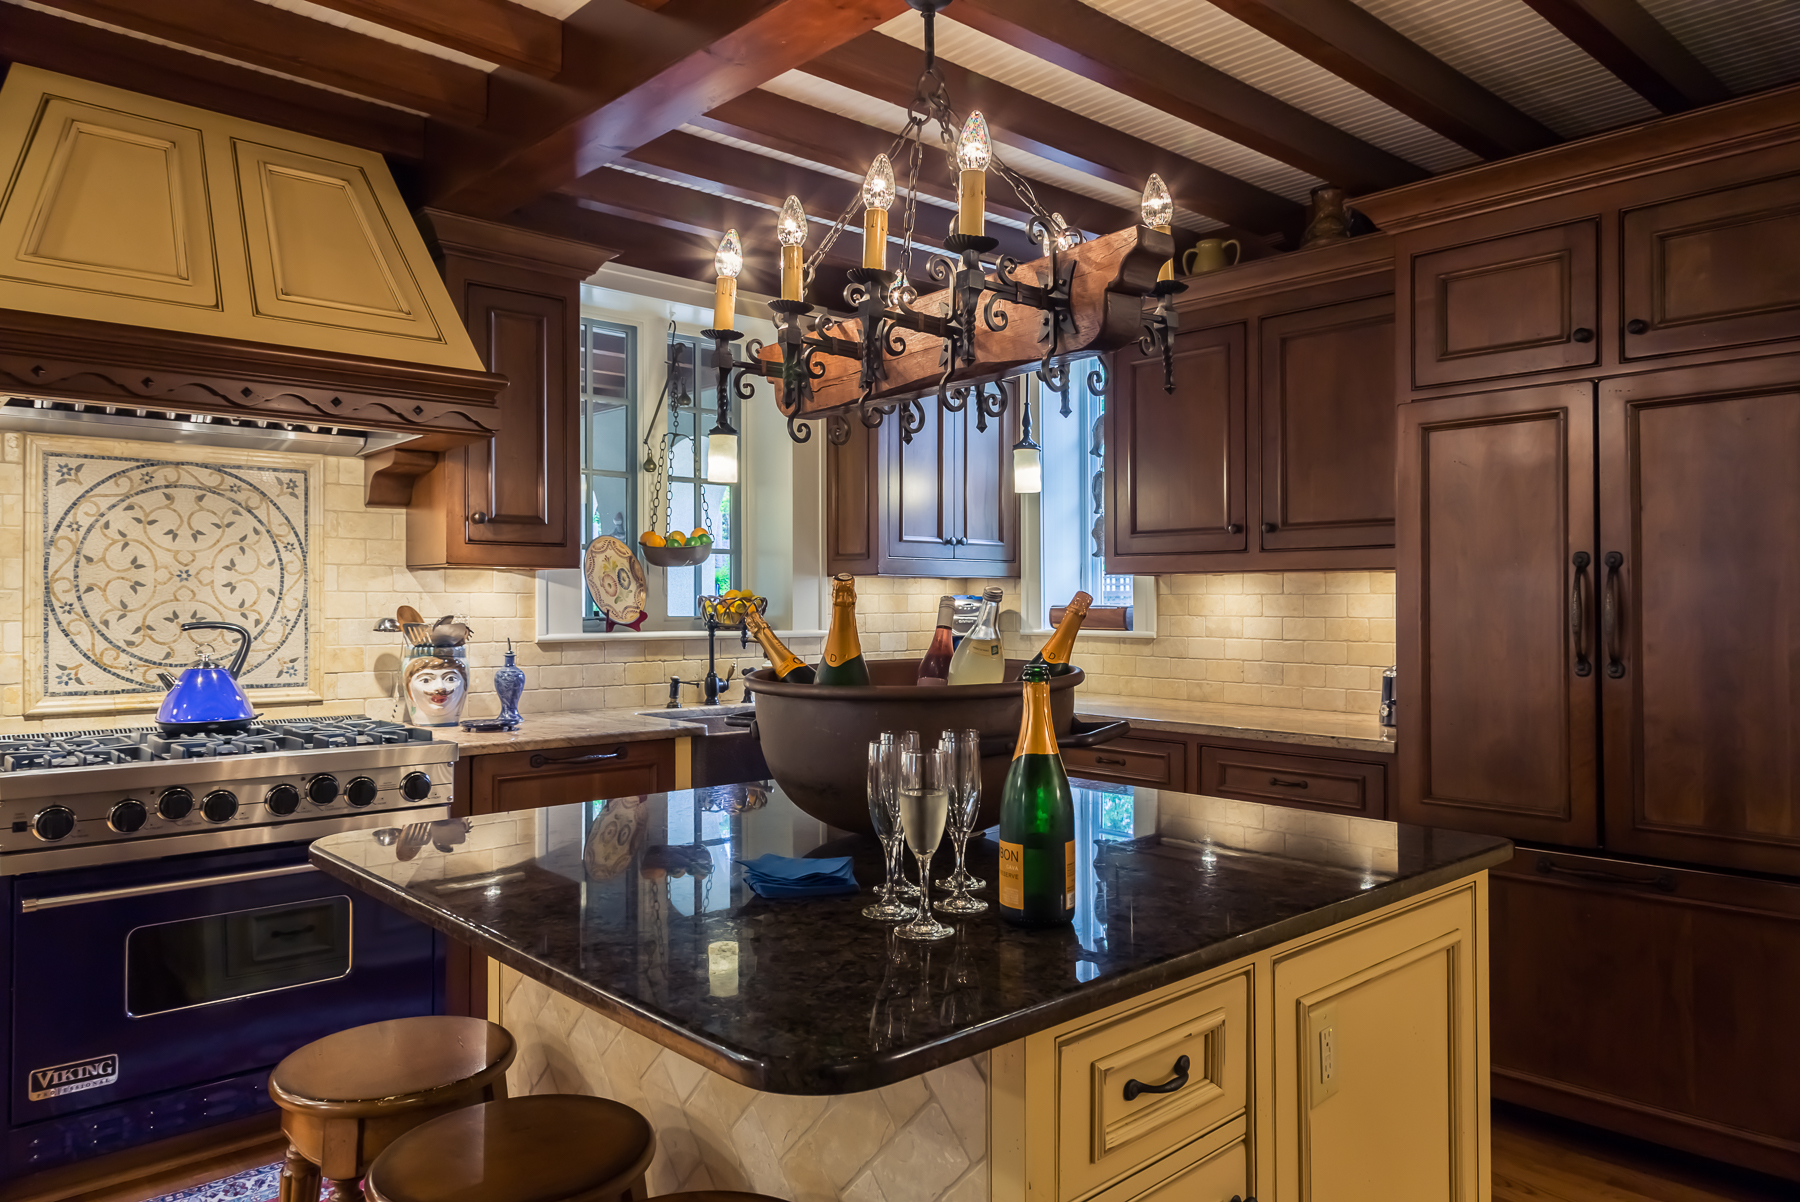 Kitchen design form function interior design raleigh nc for Kitchen design raleigh